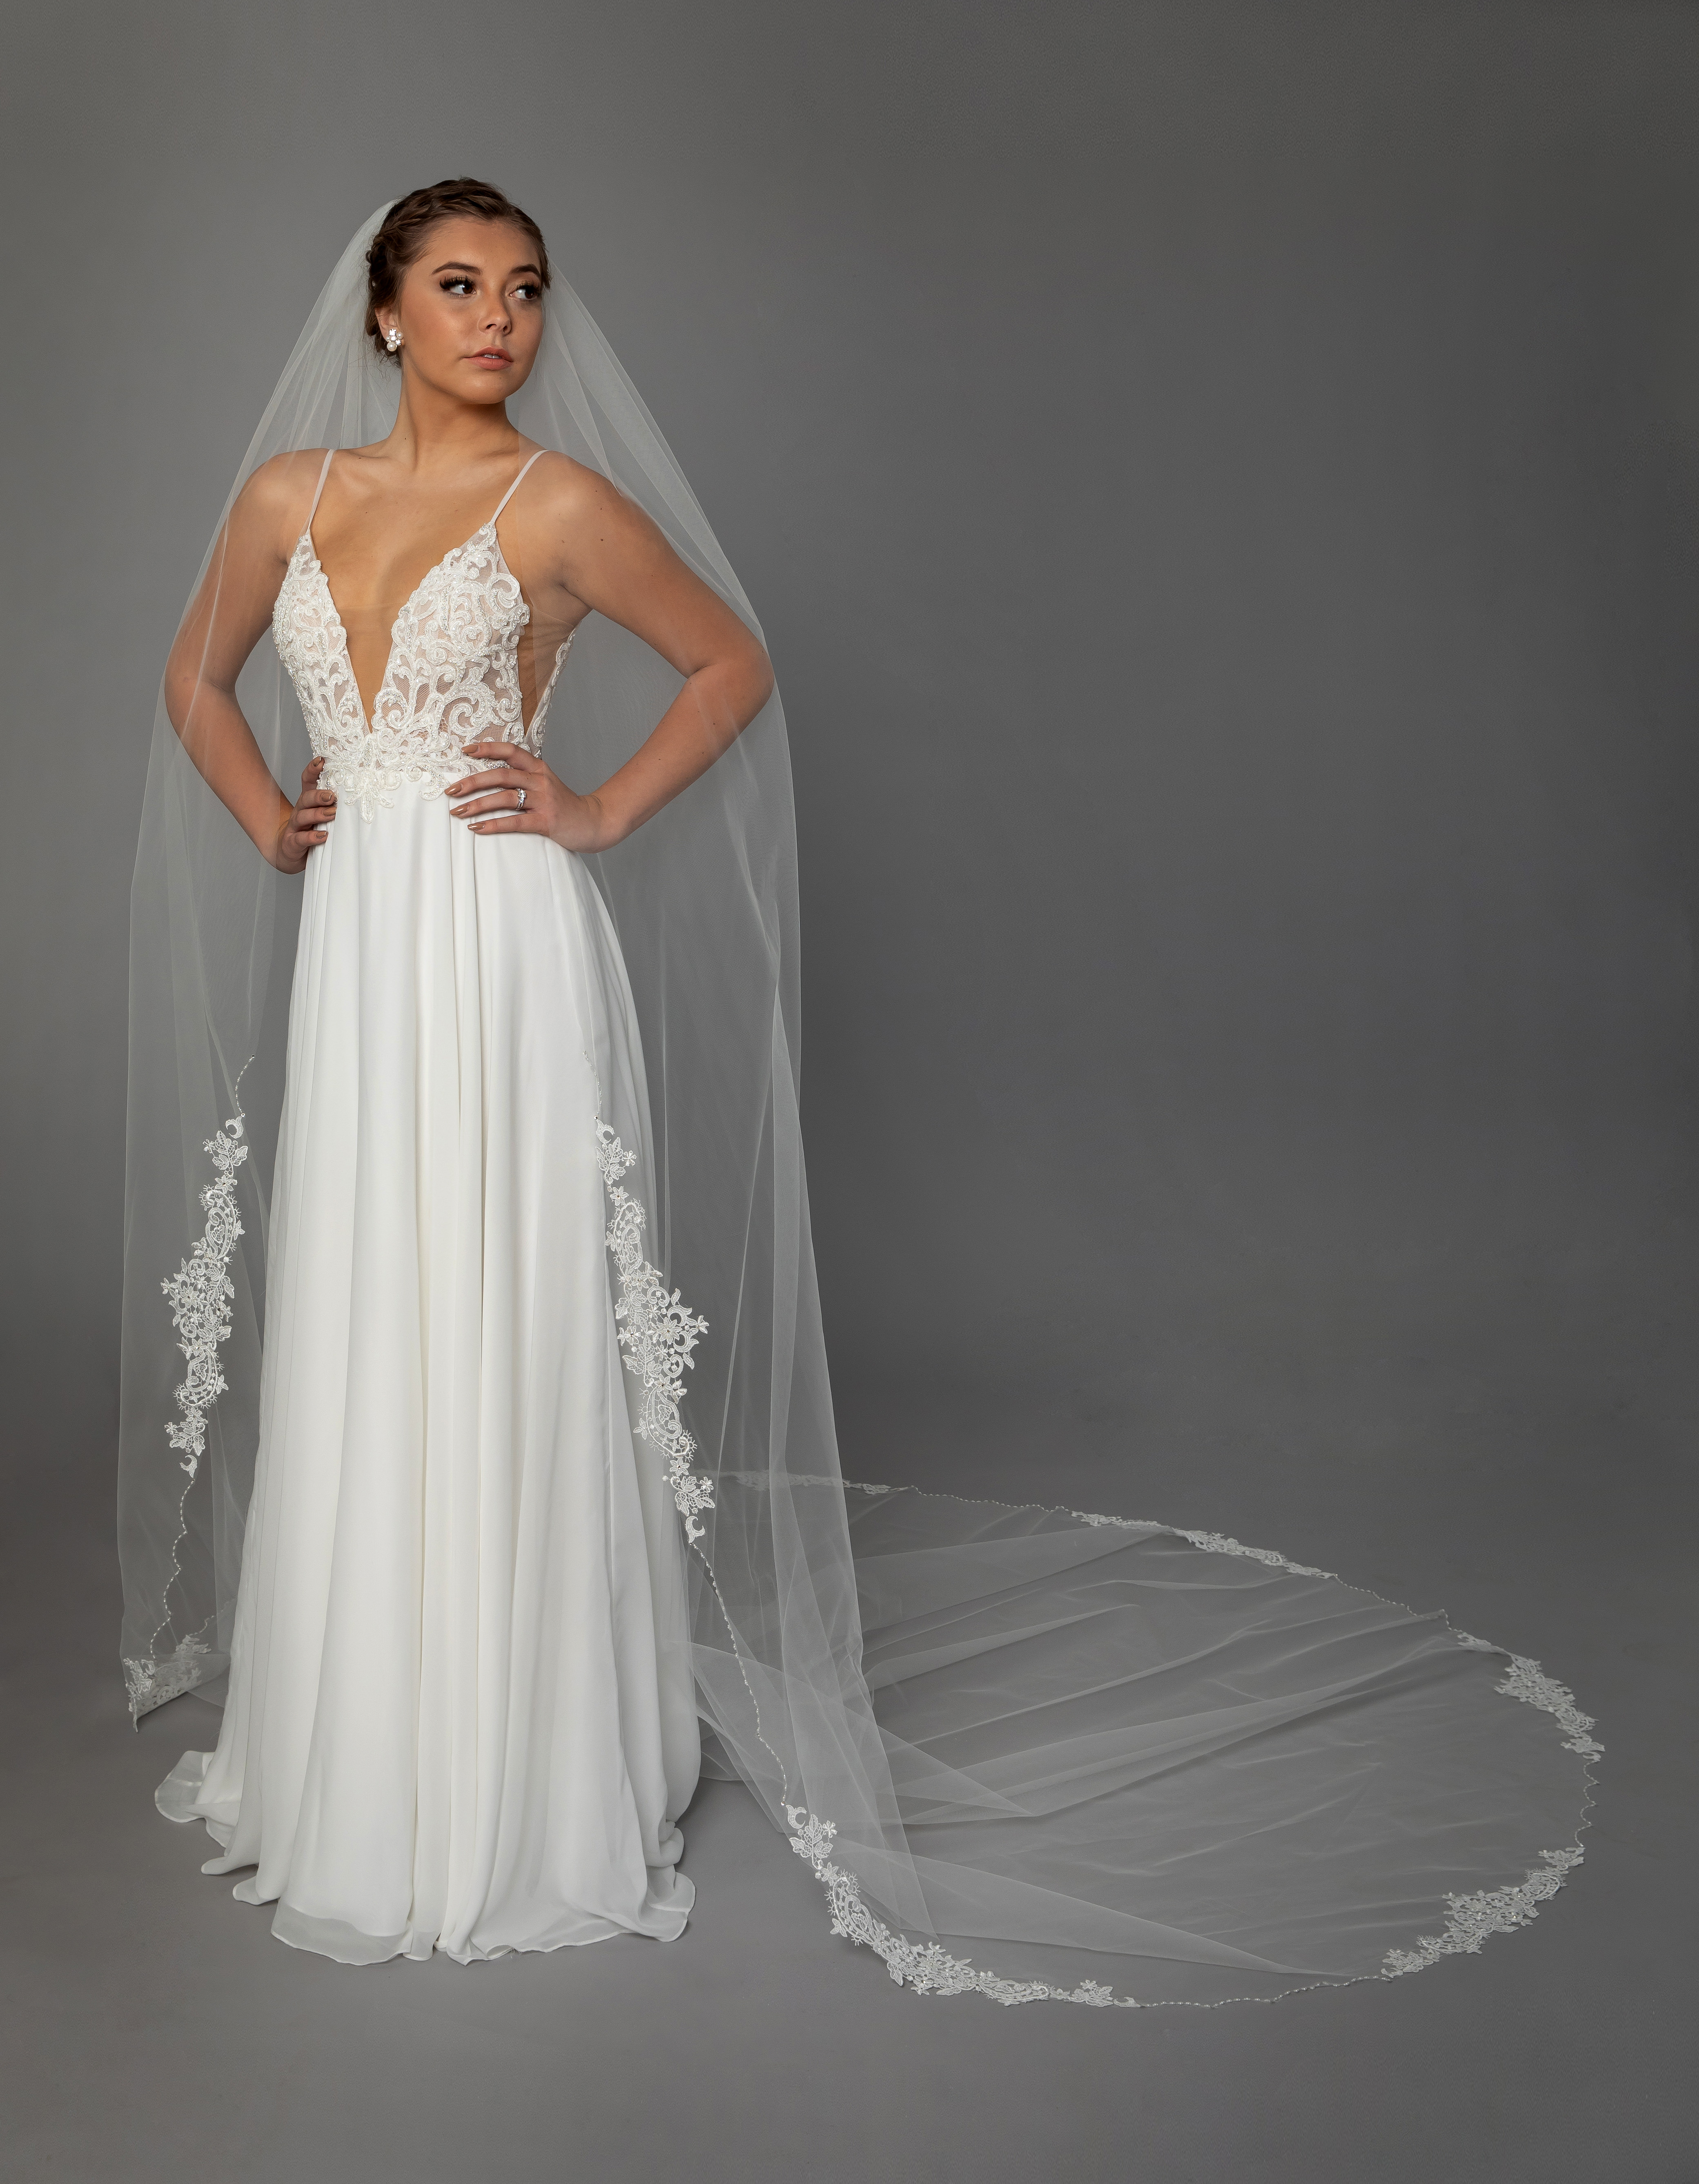 Bridal Classics Marquise Veil Collection MV-2488